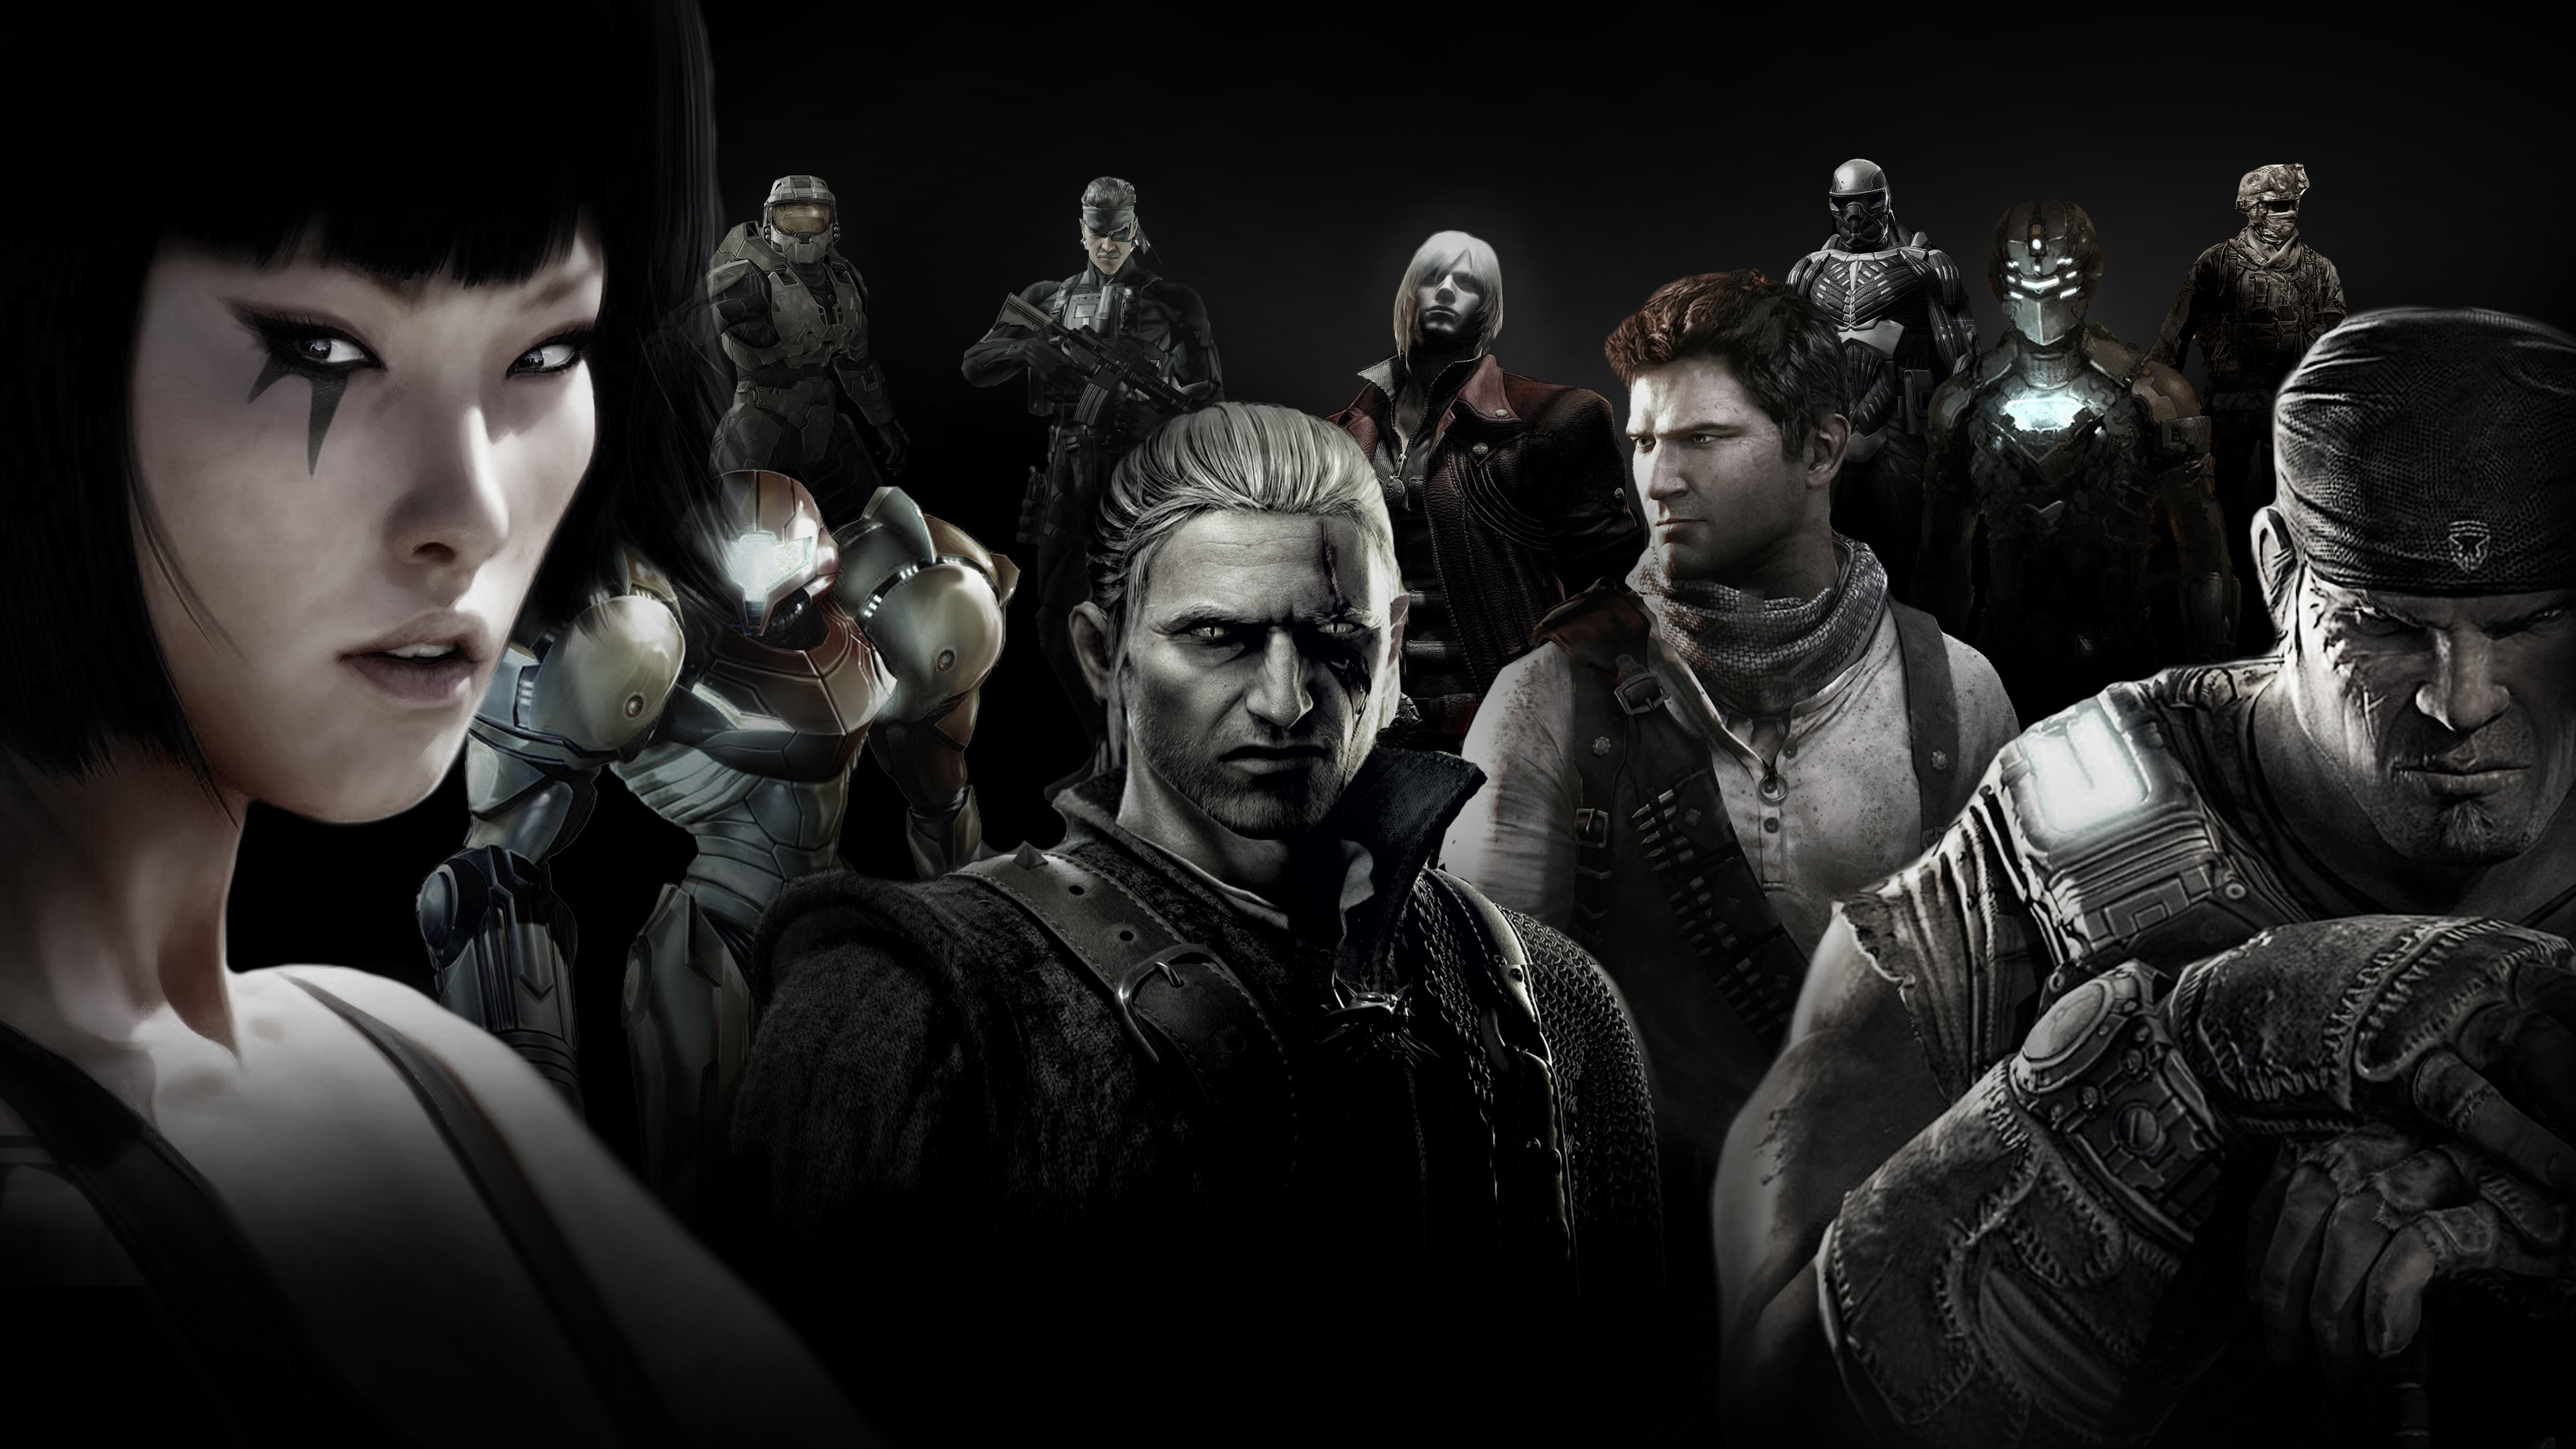 console games wallpapers few game chars looking epic 02jpg 4521x2543